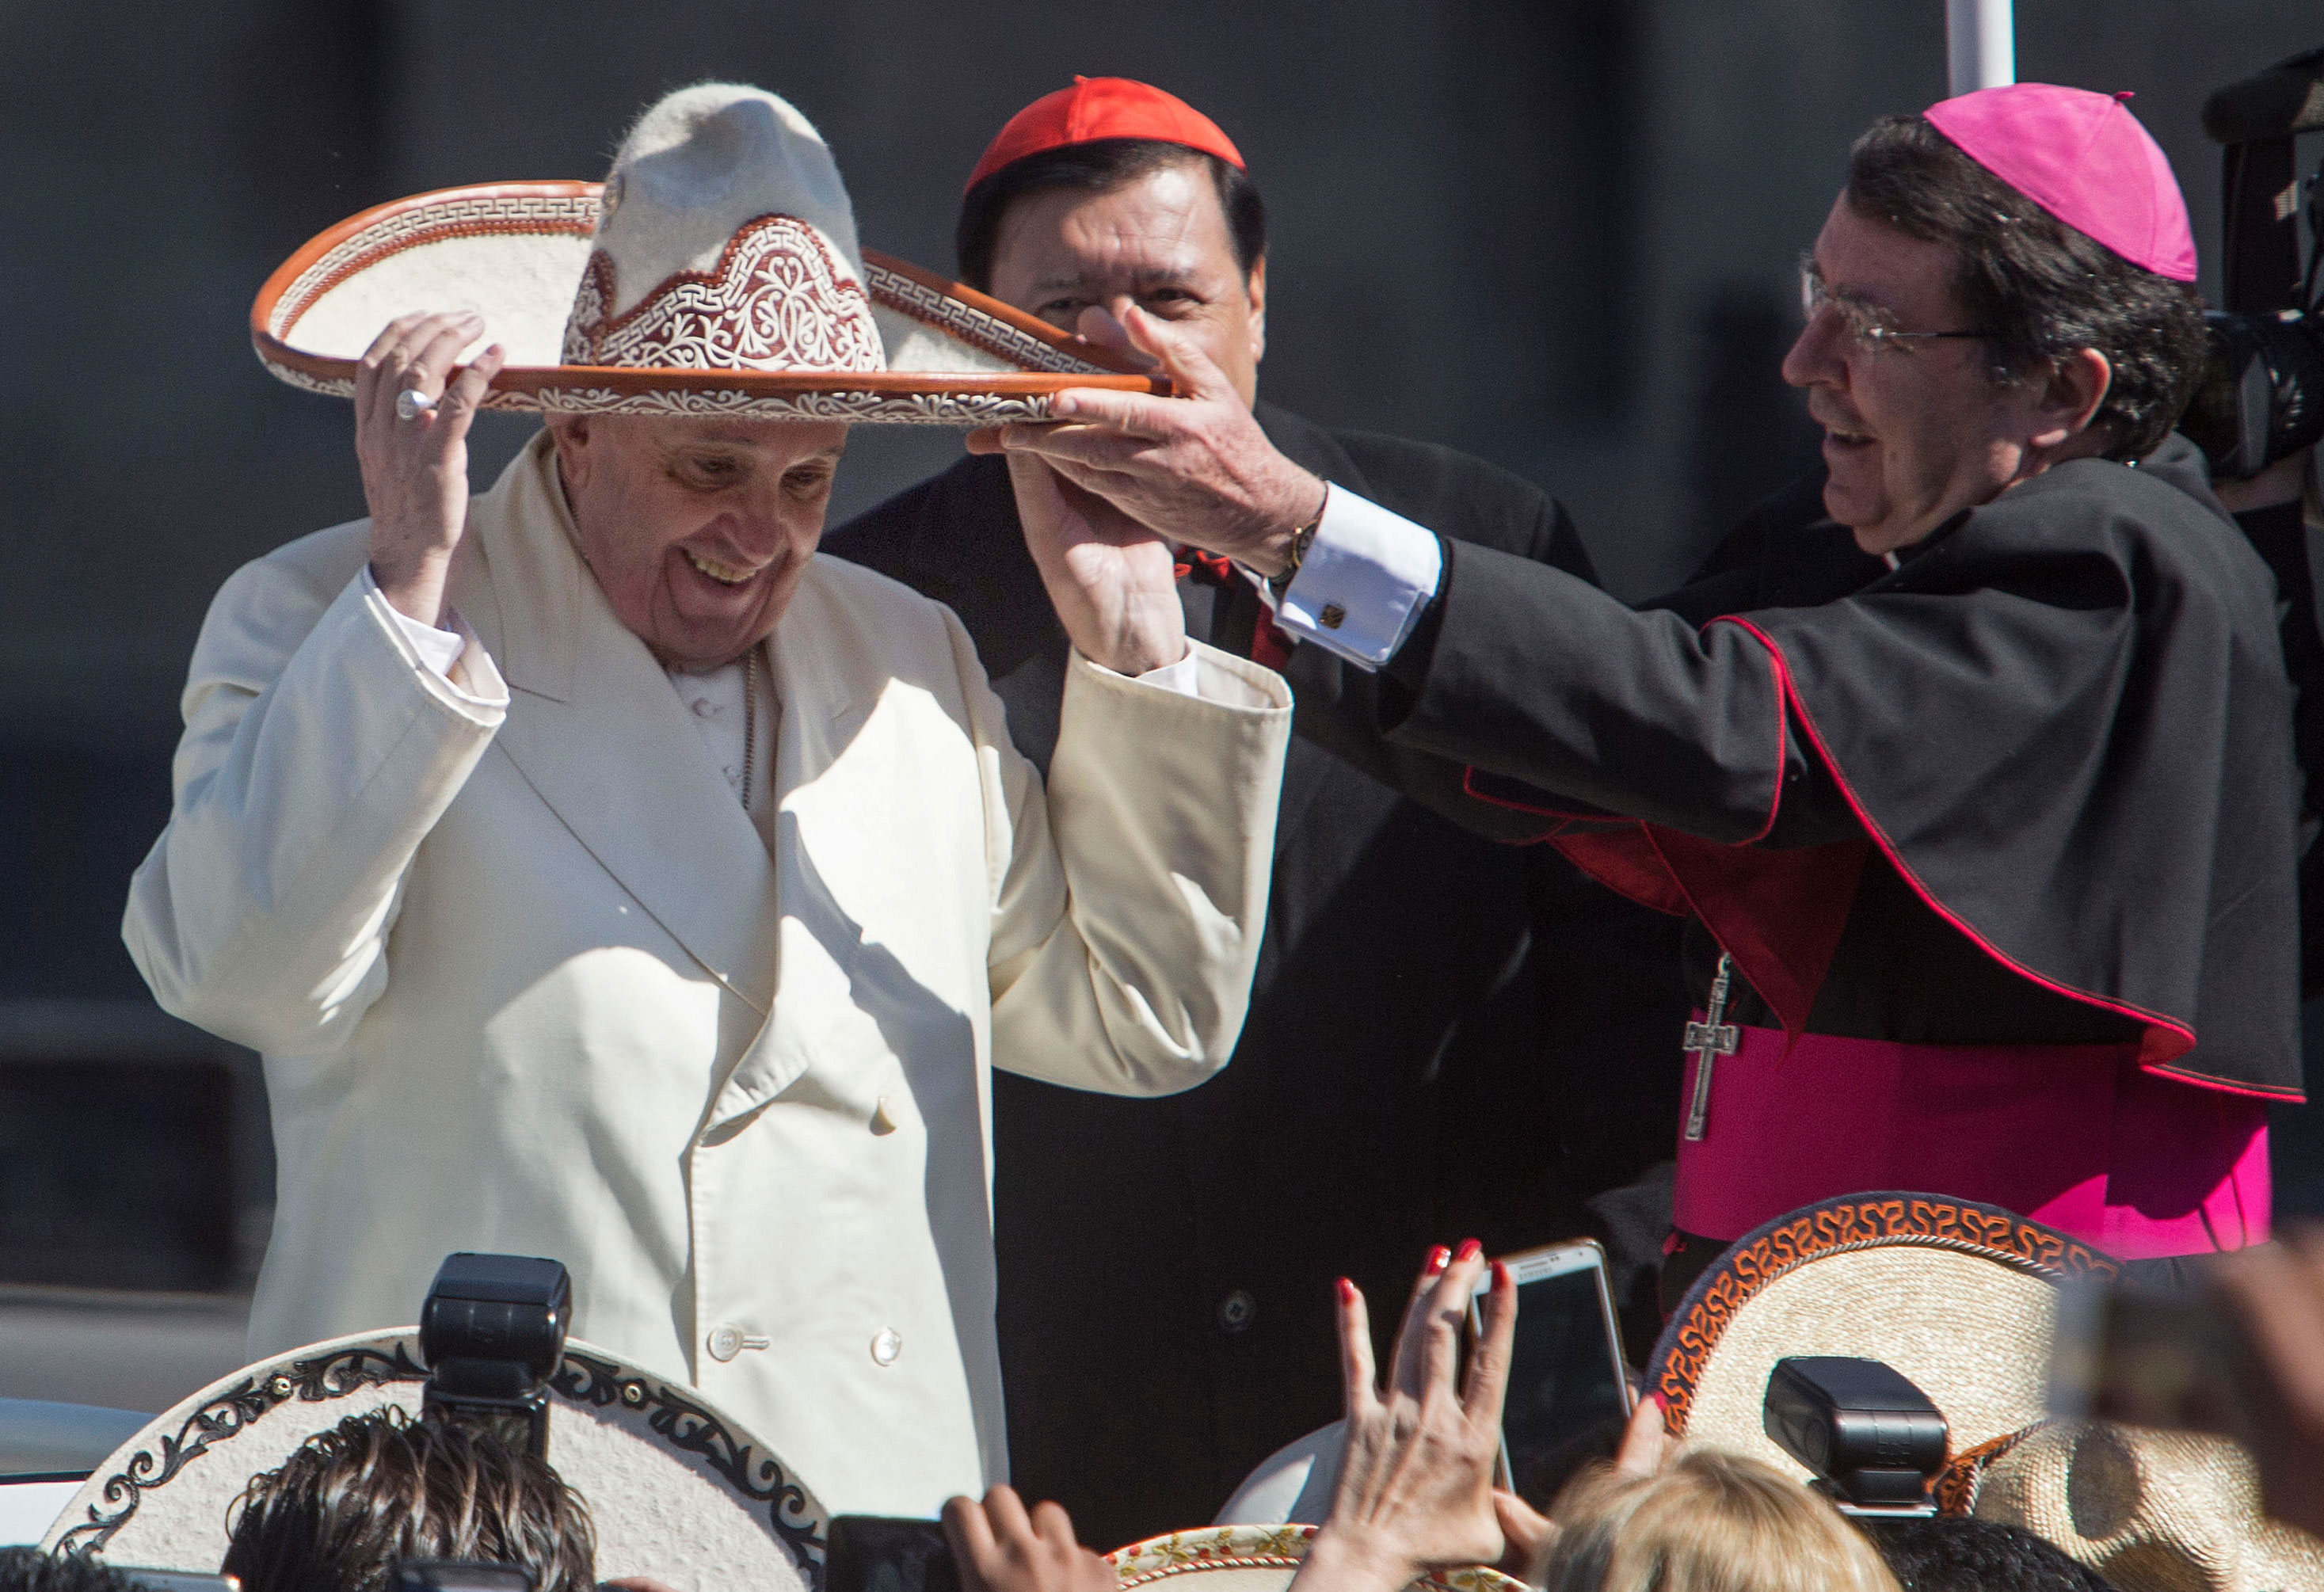 Pope Francis tries on a Mexican Charro sombrero given to him by a person in the crowd in Mexico City's main square, the Zocalo. [Christian Palma/AP]